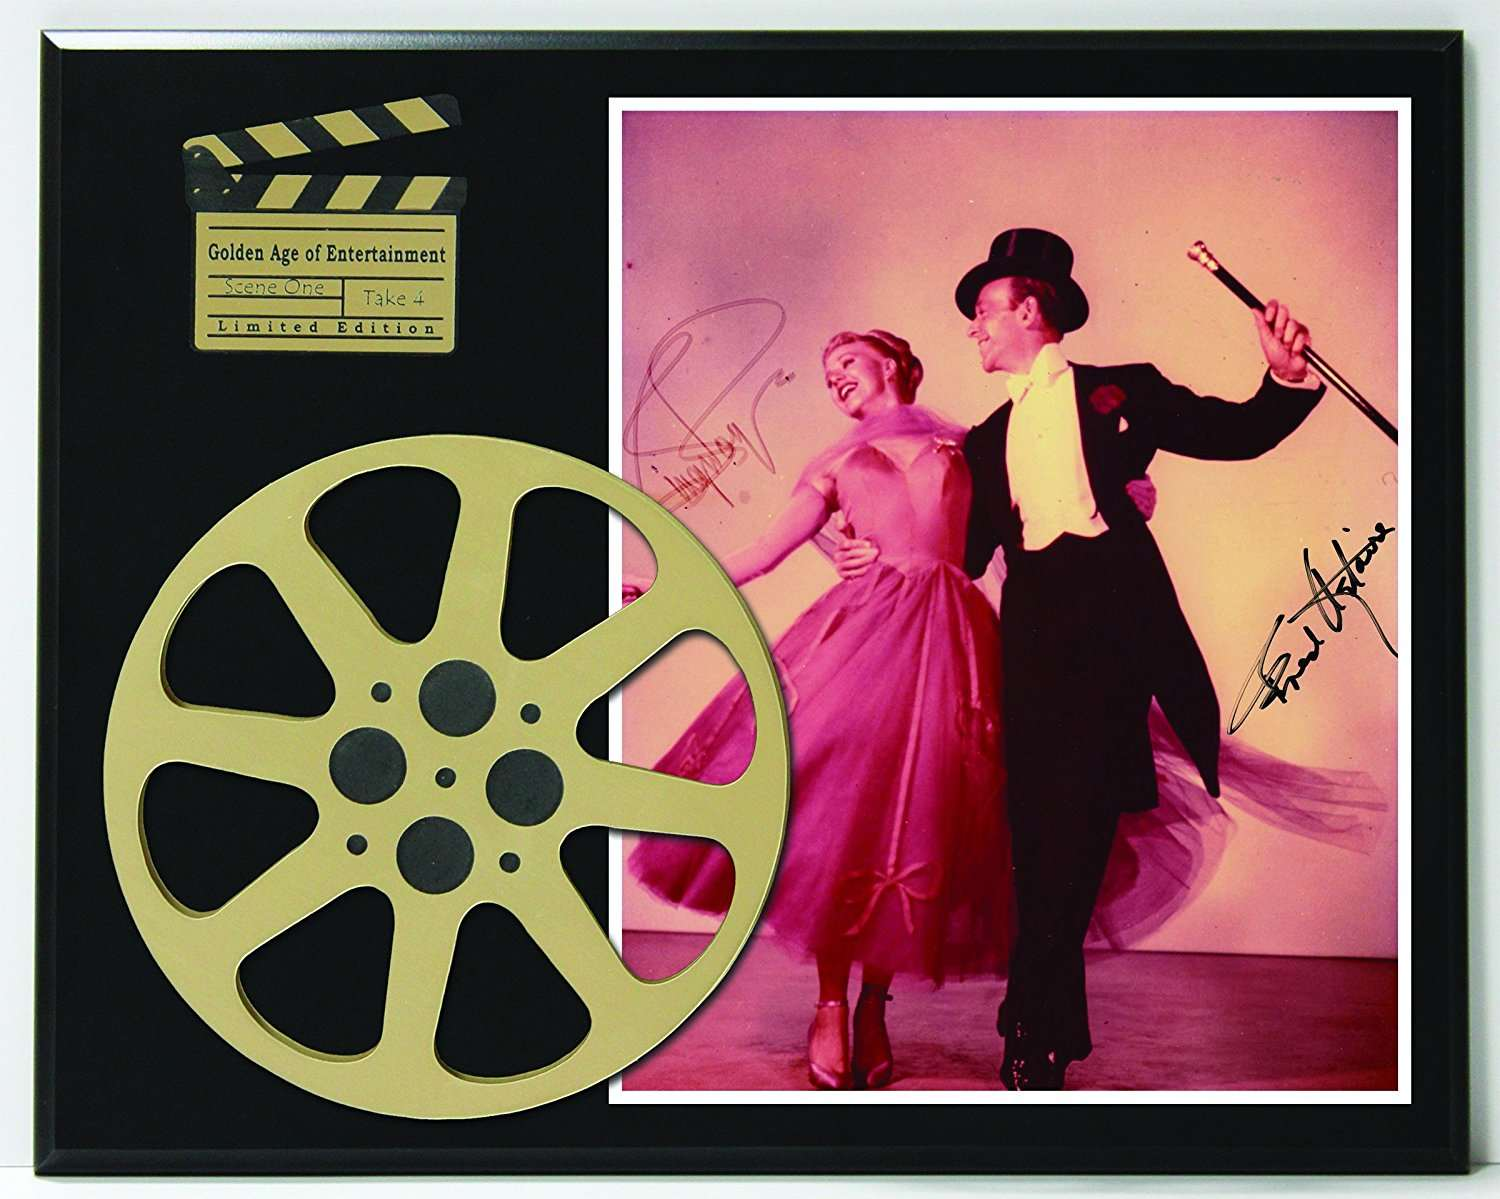 Fred Astaire And Ginger Rogers Limited Edition Reproduction Autographed Movie Reel Display K1 Gold Record Outlet Album And Disc Collectible Memorabilia